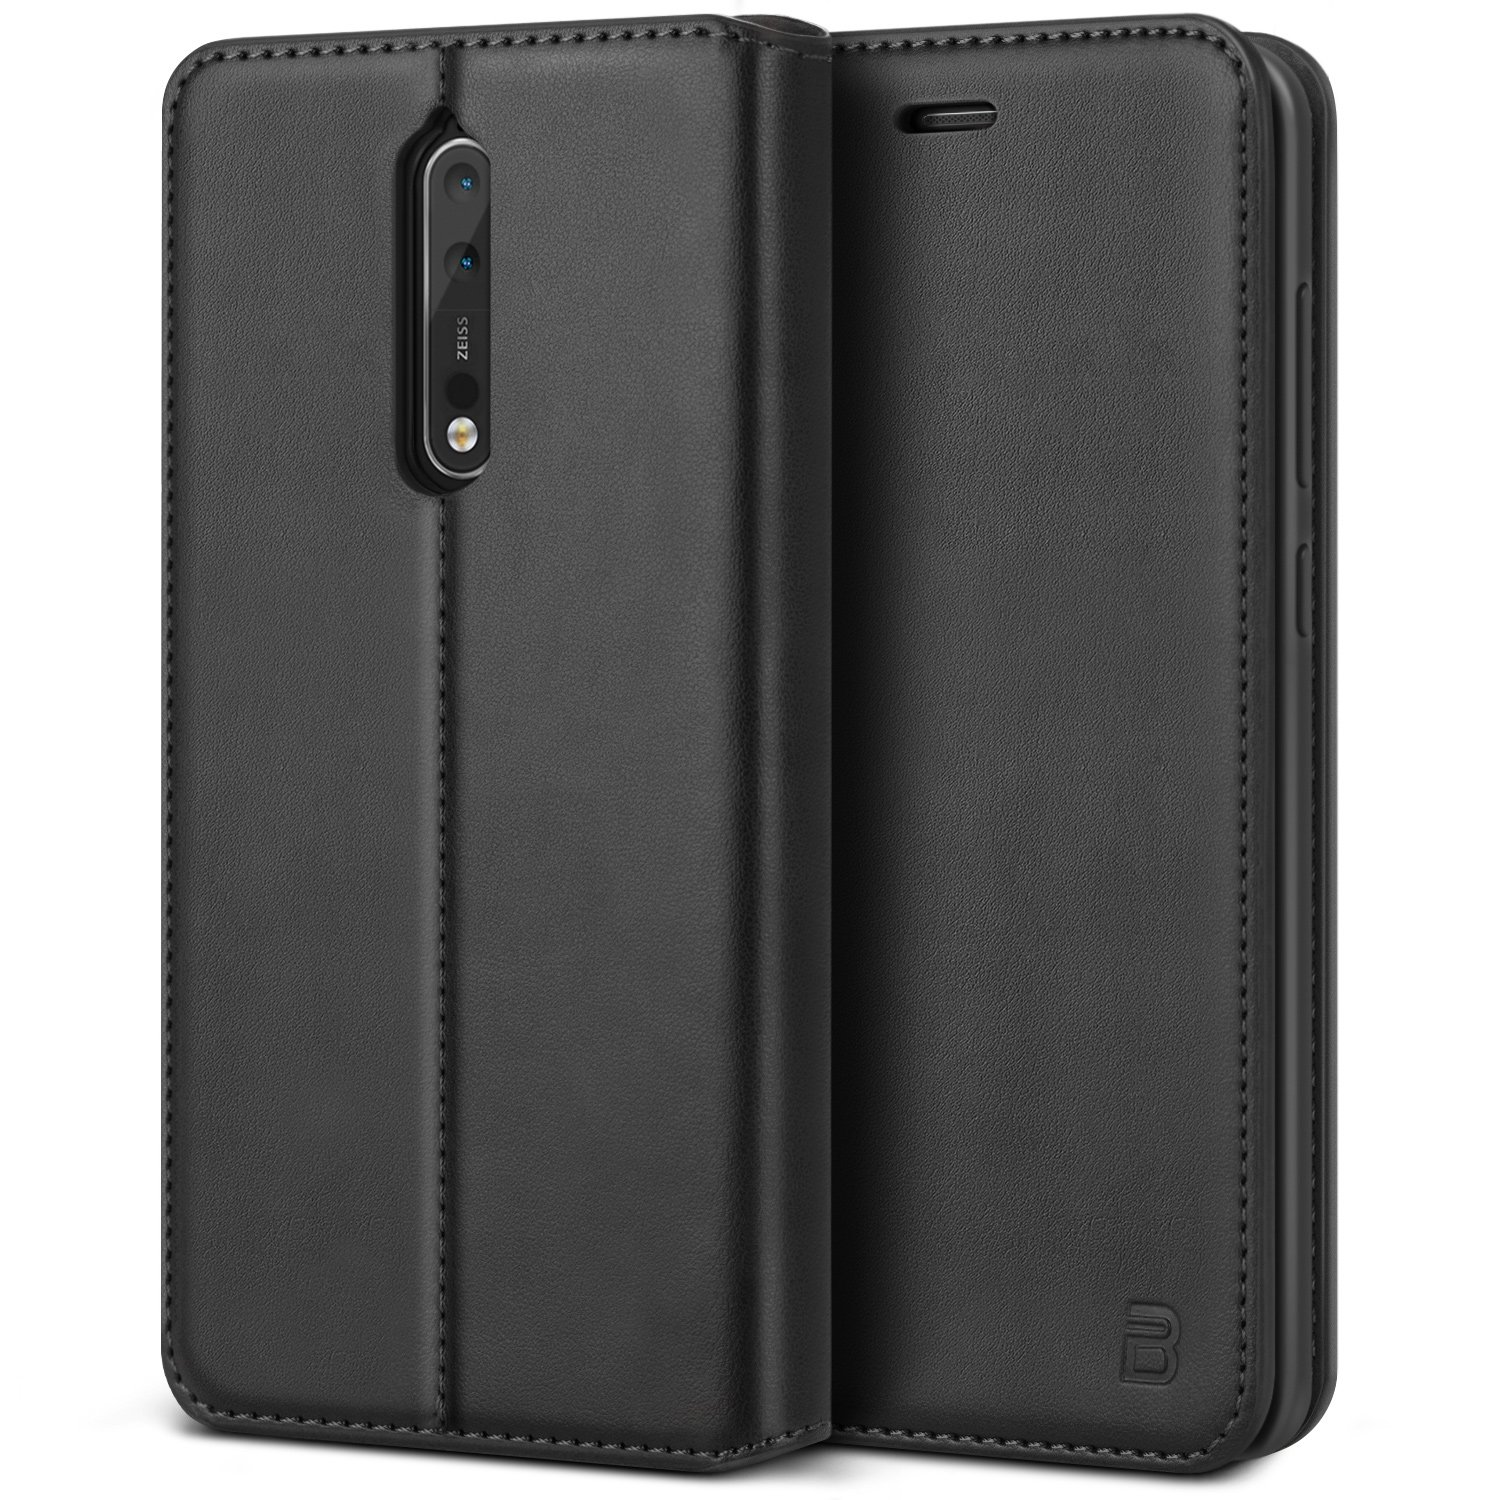 on sale 18a6a a93a2 BEZ Case for Nokia 8 Case, Protective PU Leather Wallet Flip Phone Cover  Compatible with Nokia 8 with A Card Holder, Kick Stand, Magnetic Closure,  ...